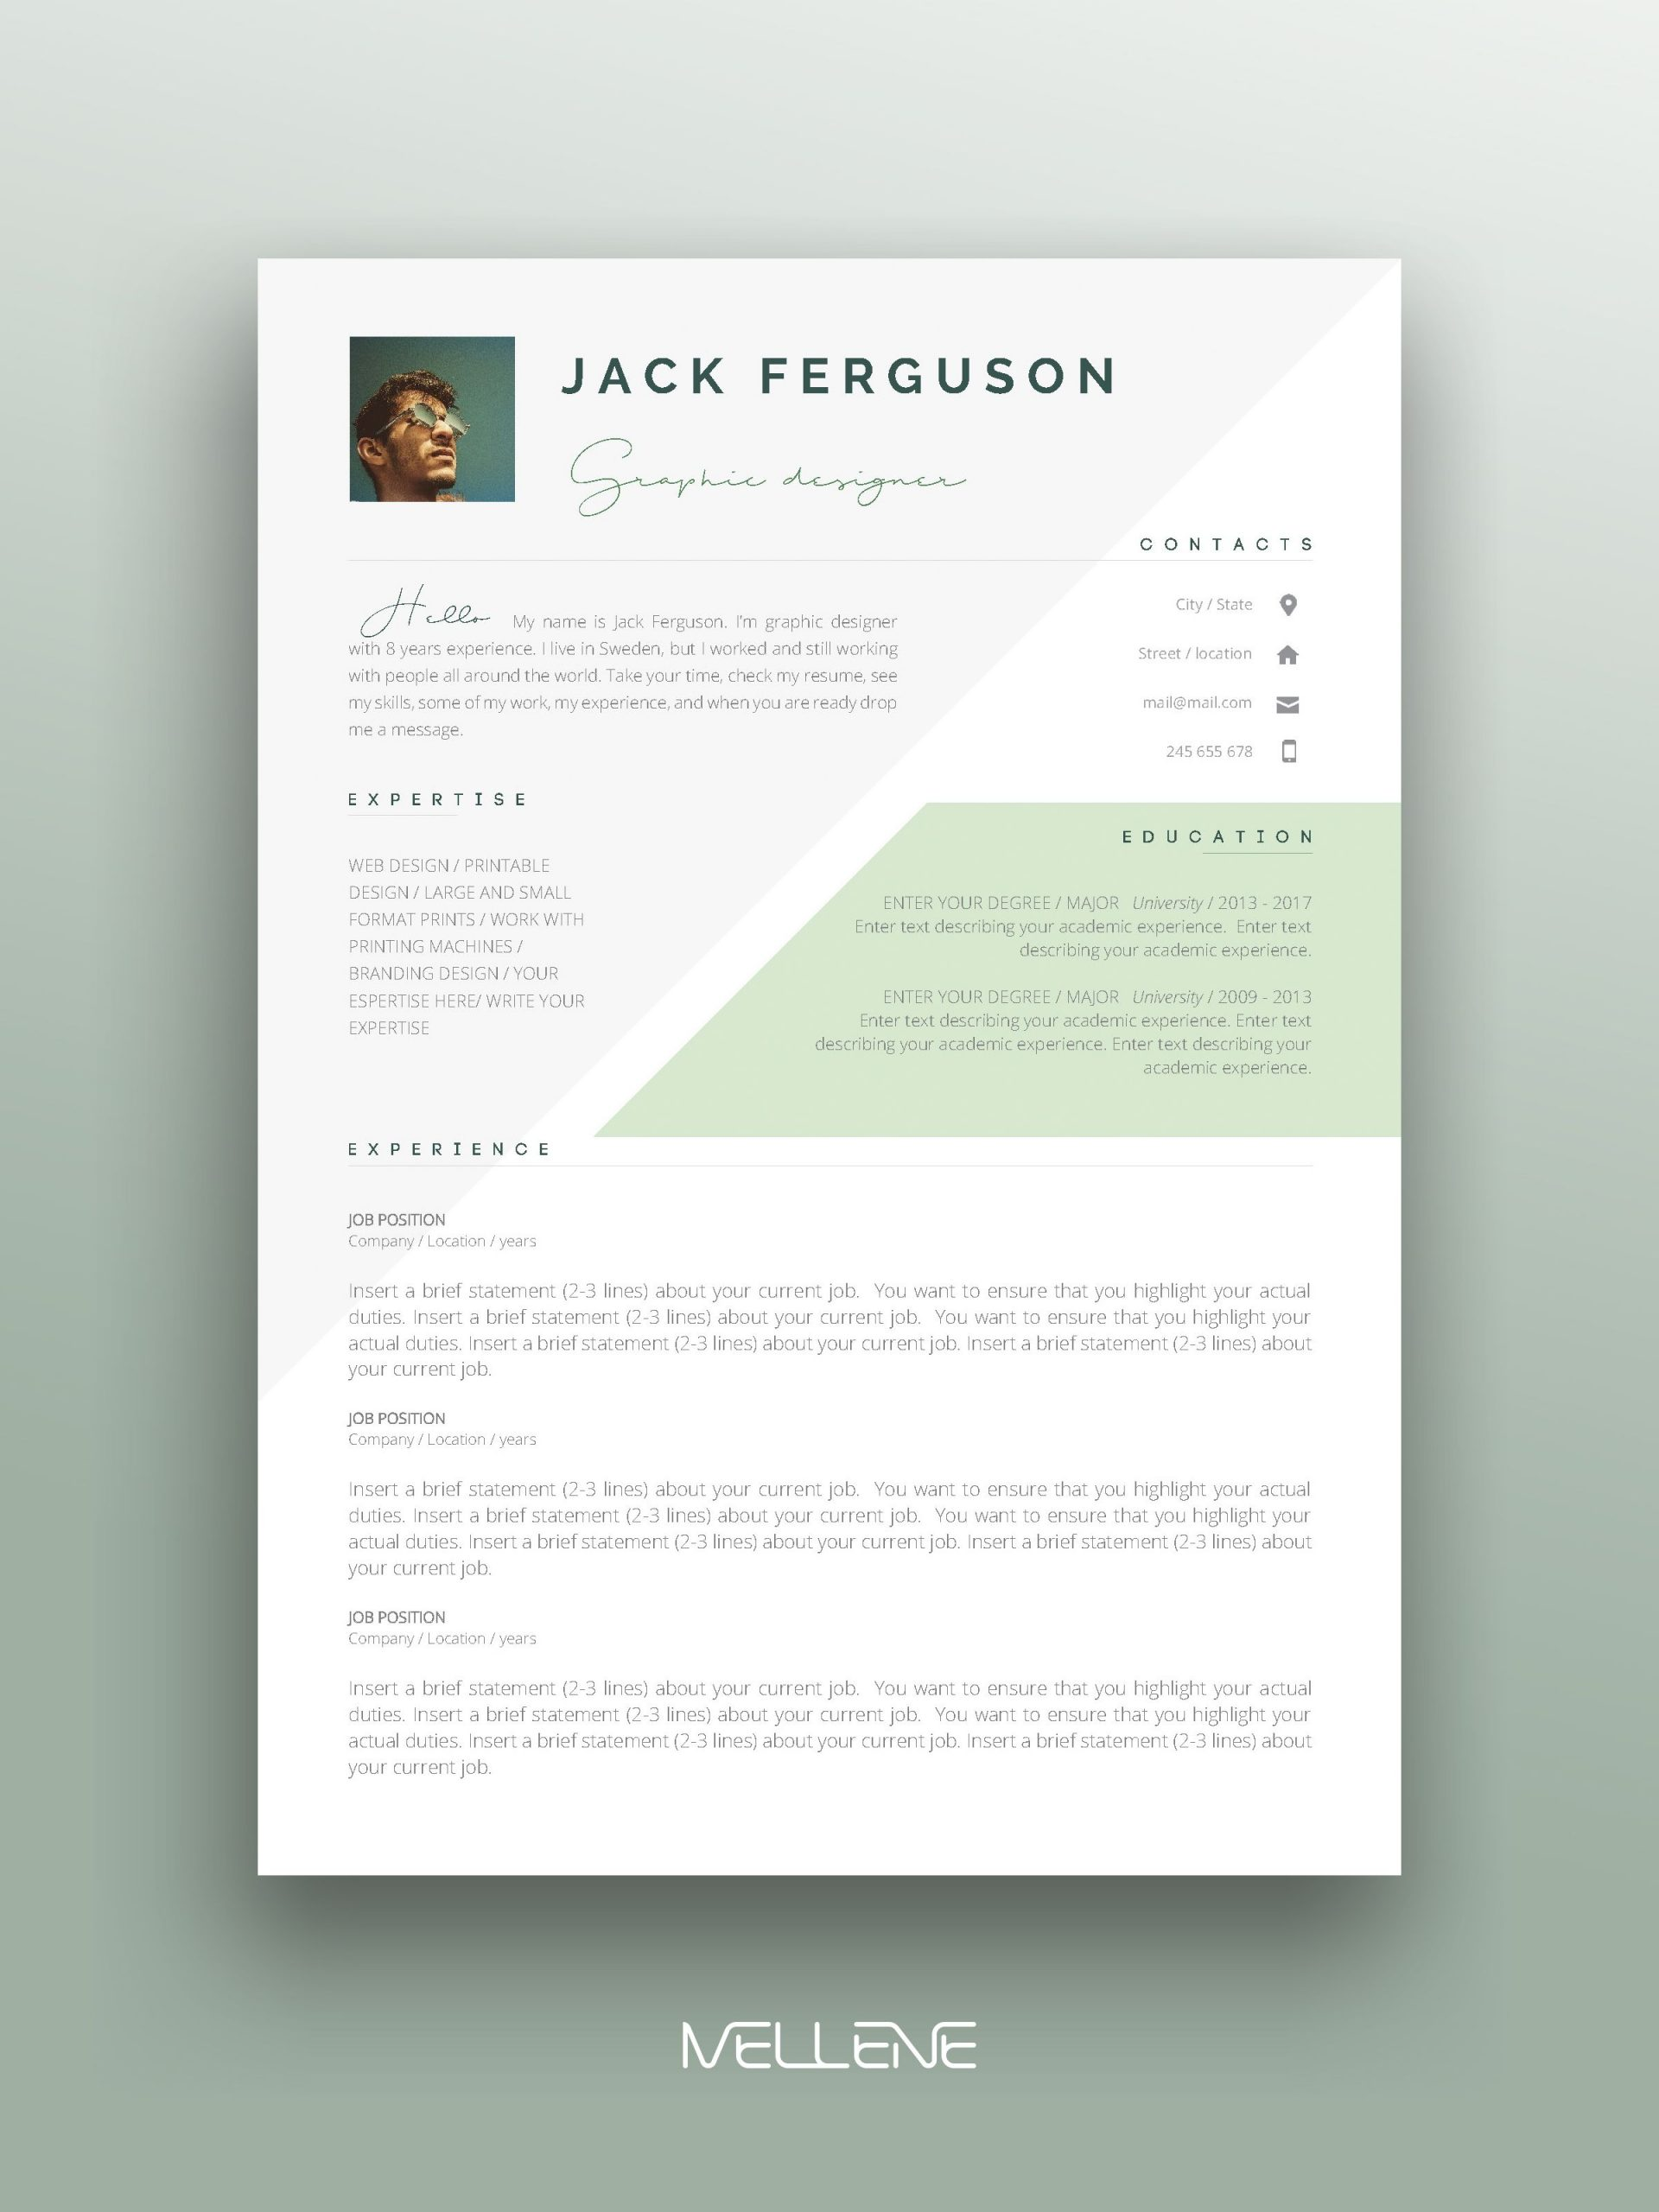 Resume CV template for MS Word Professional application cover letter Self presentation branding